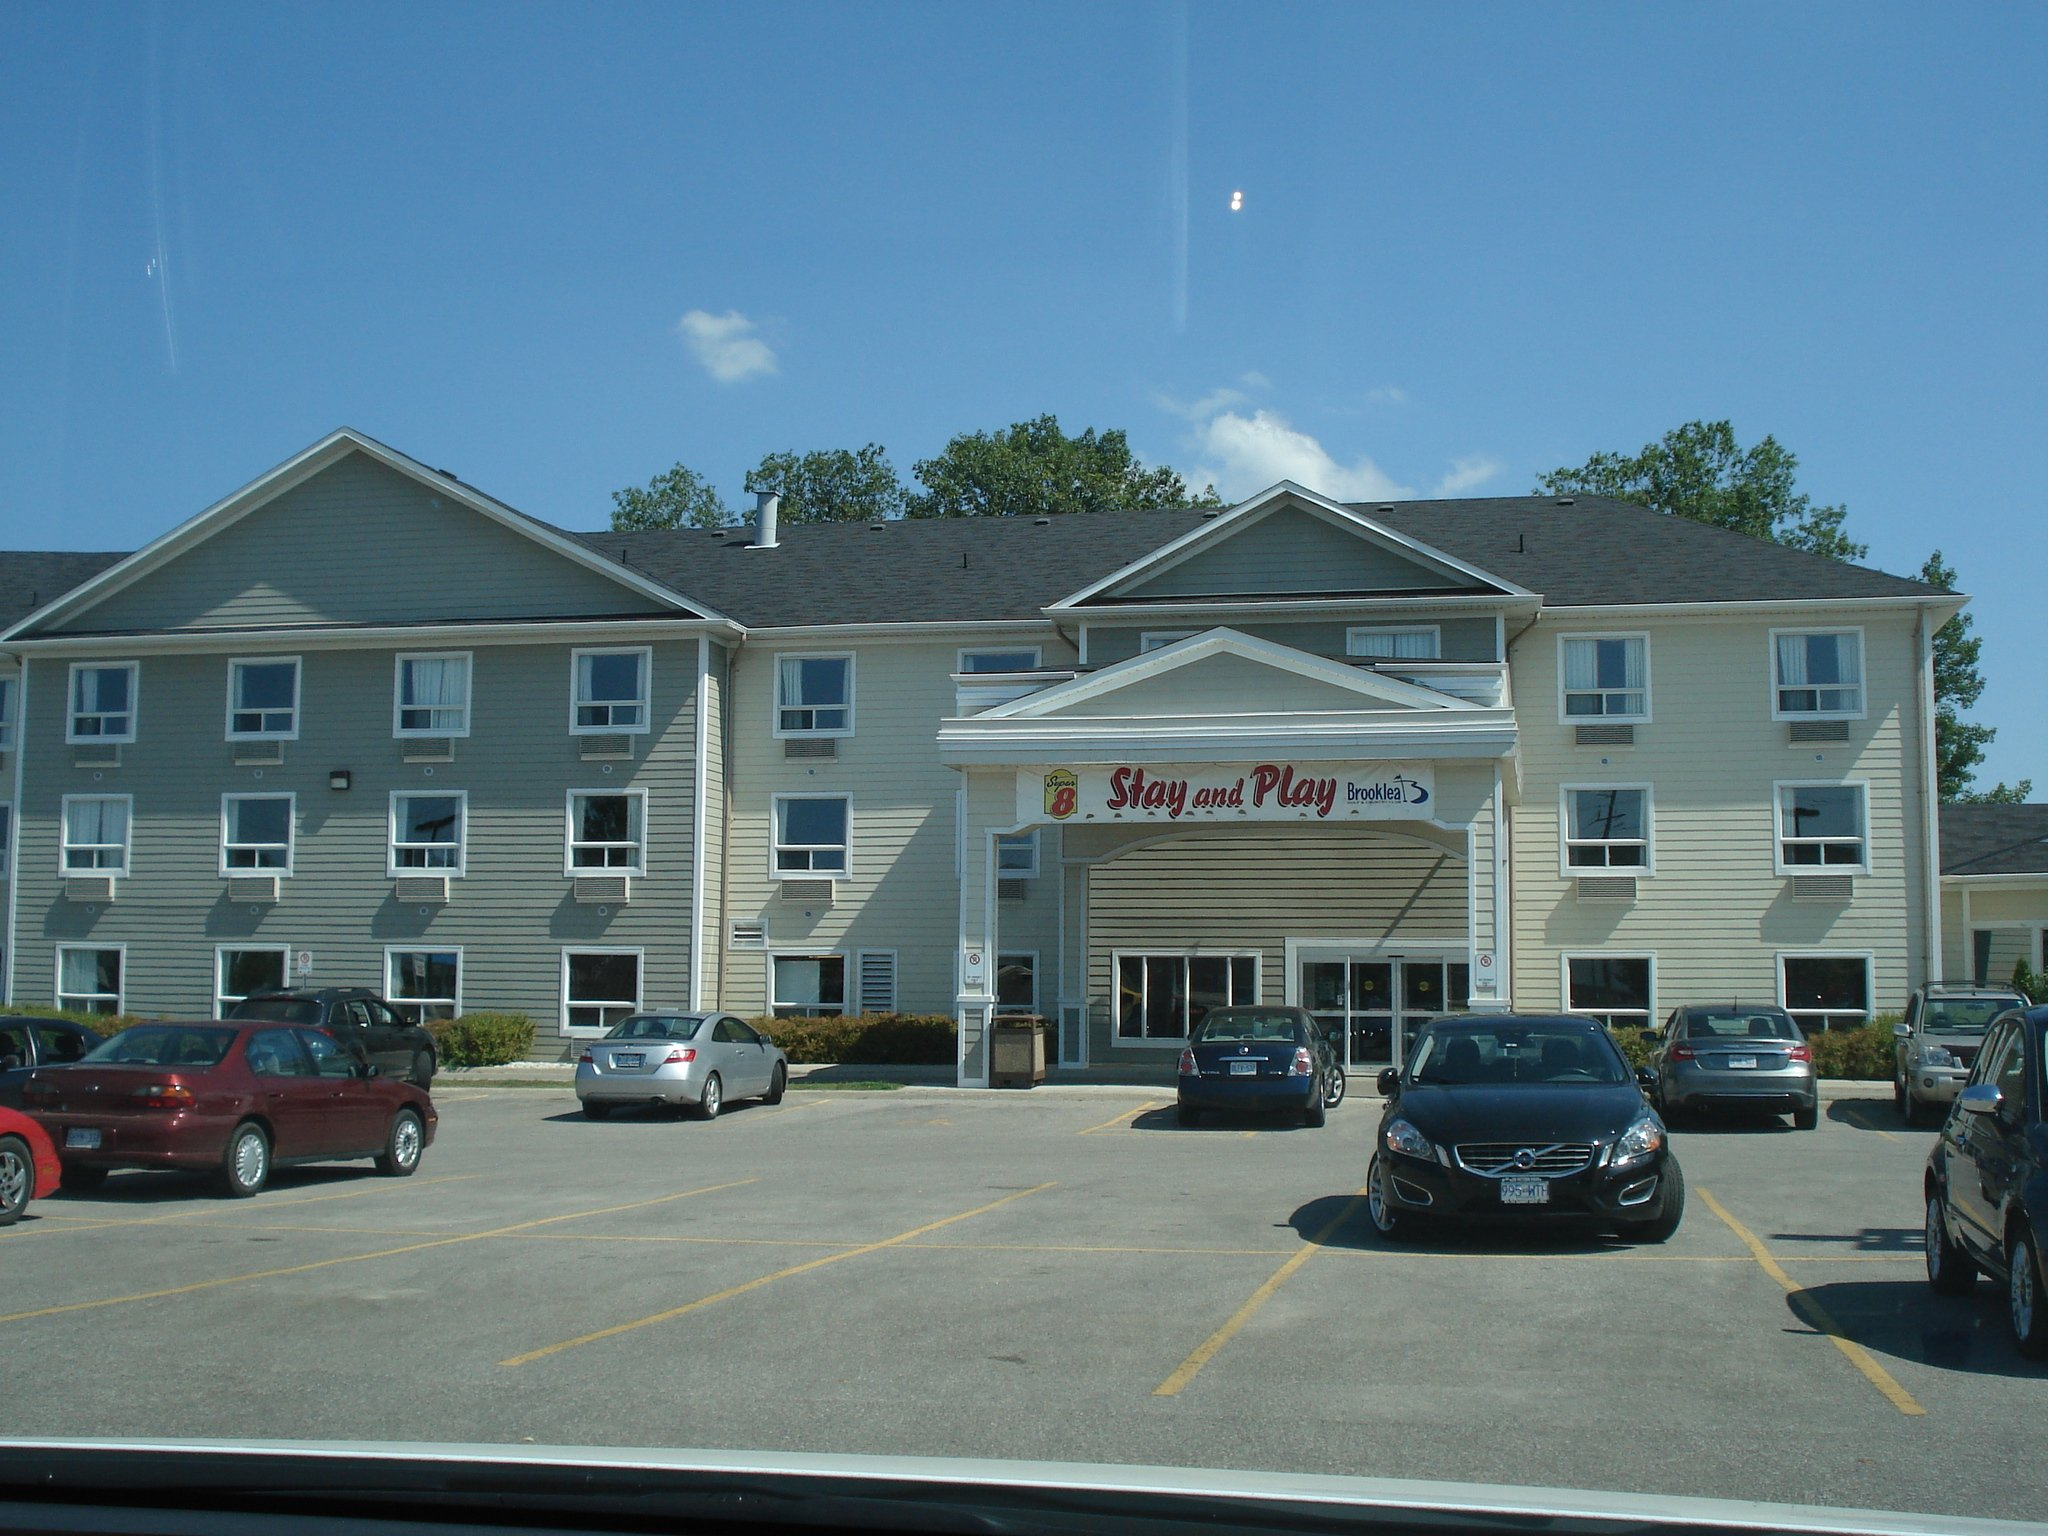 Super8 Hotel Review